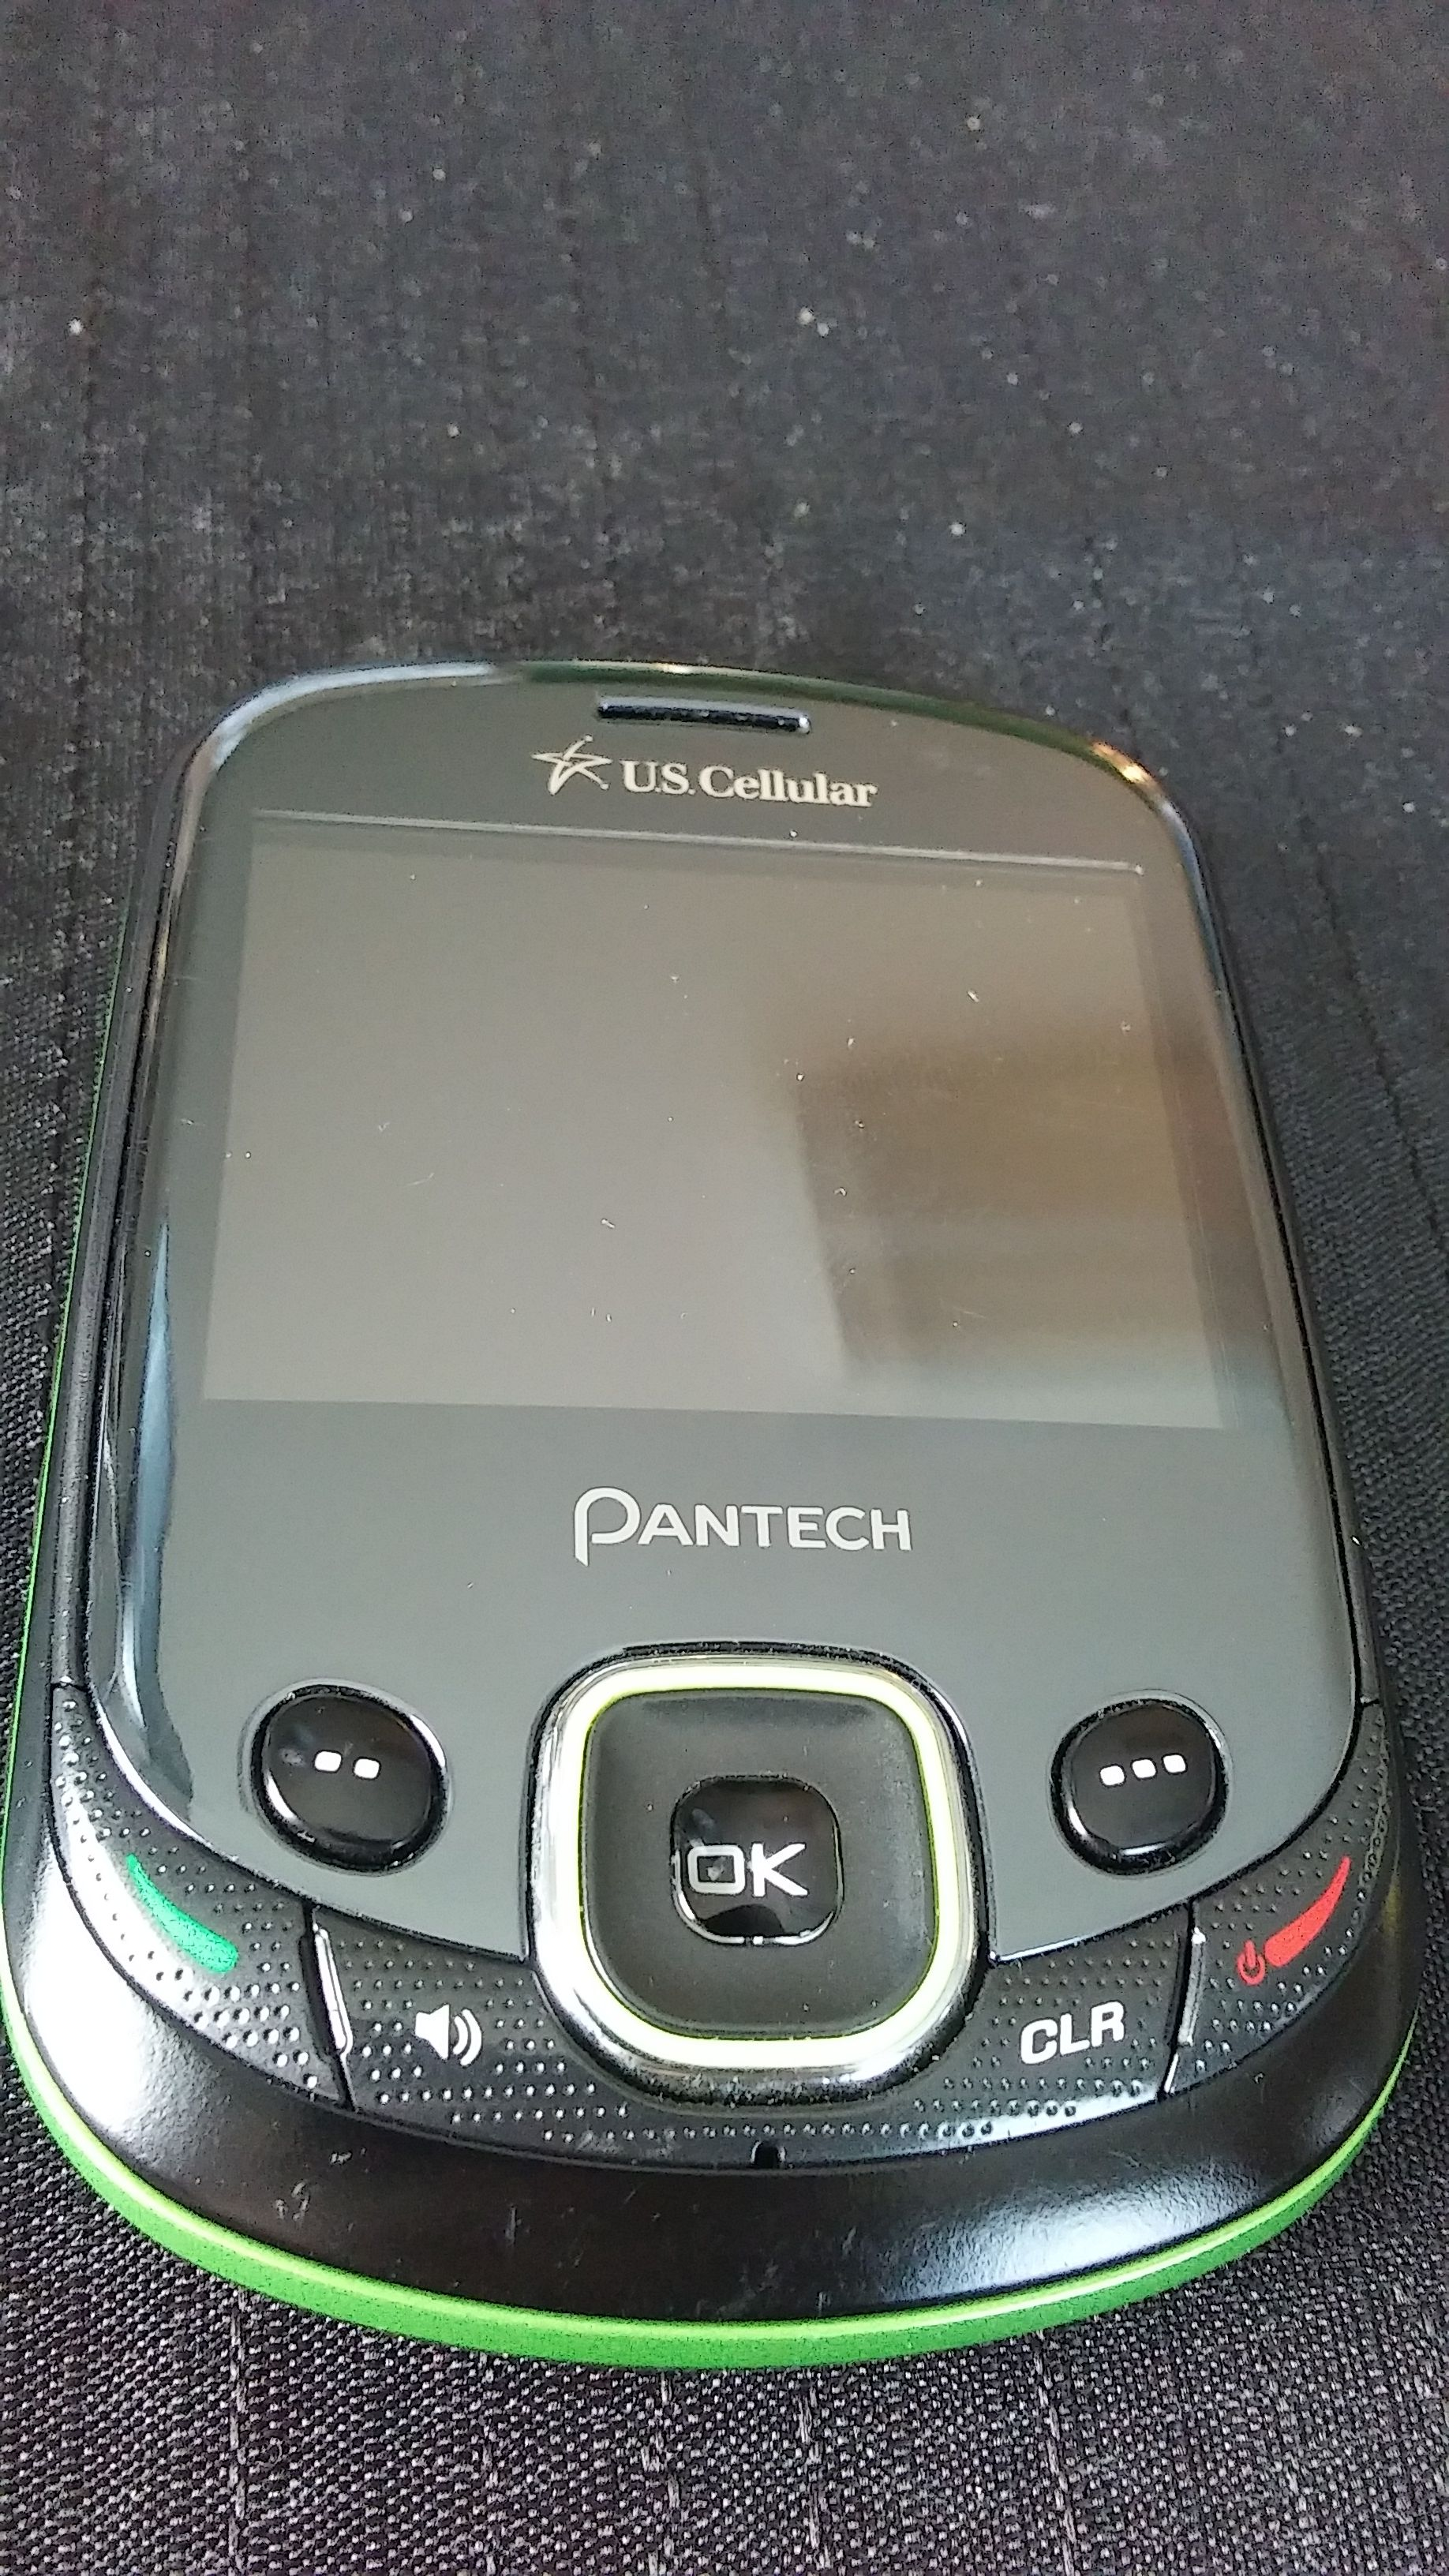 US Cellular Pantech Slide Cell Phone   For Sale on gogetwhat com